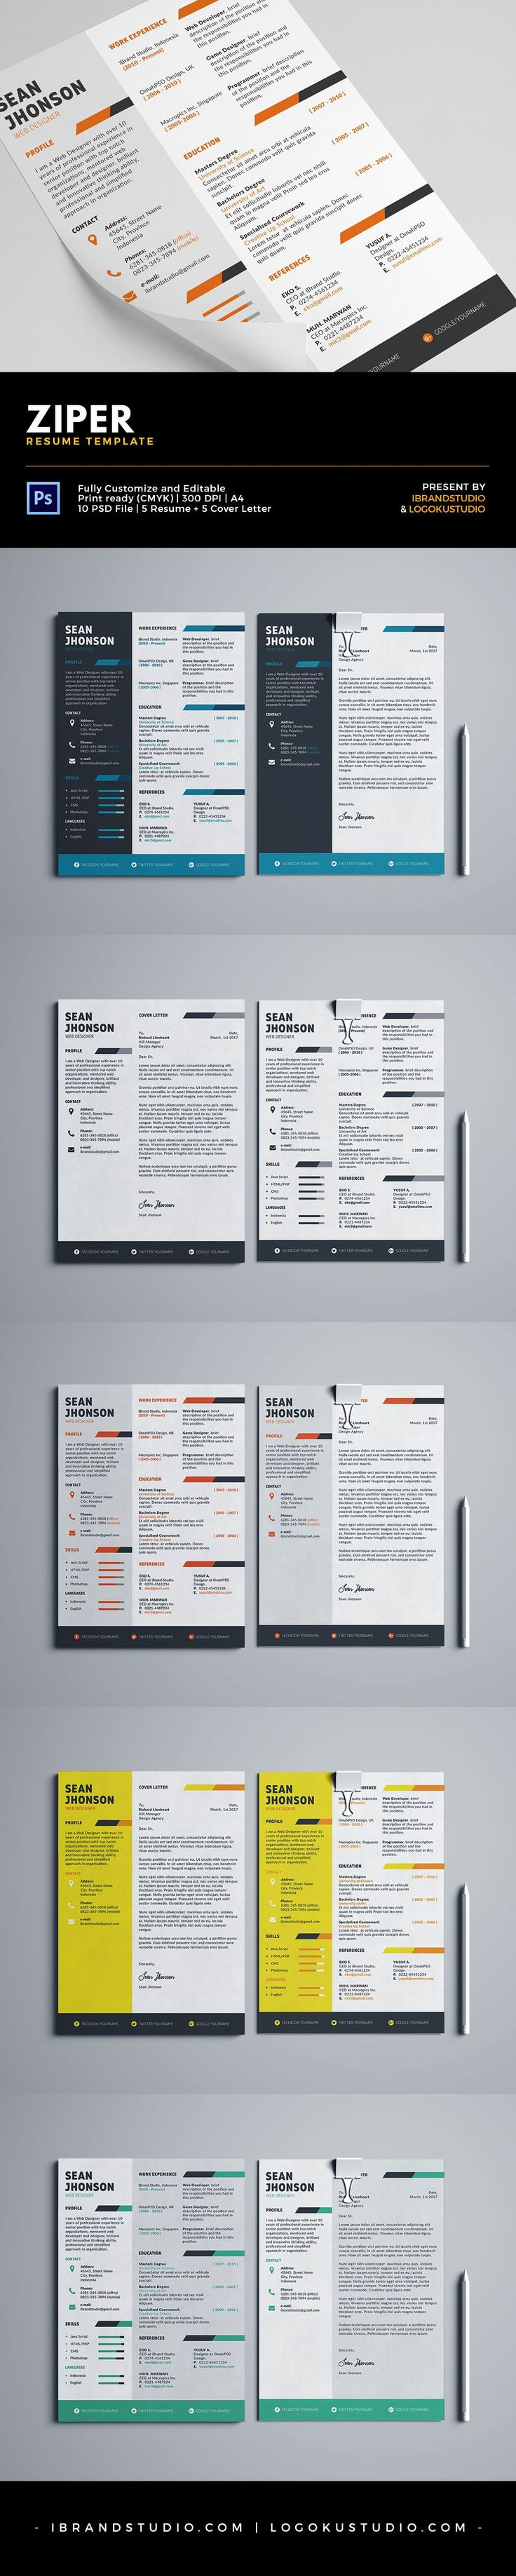 Scientific Cv Latex Templates%0A resume bookkeeper